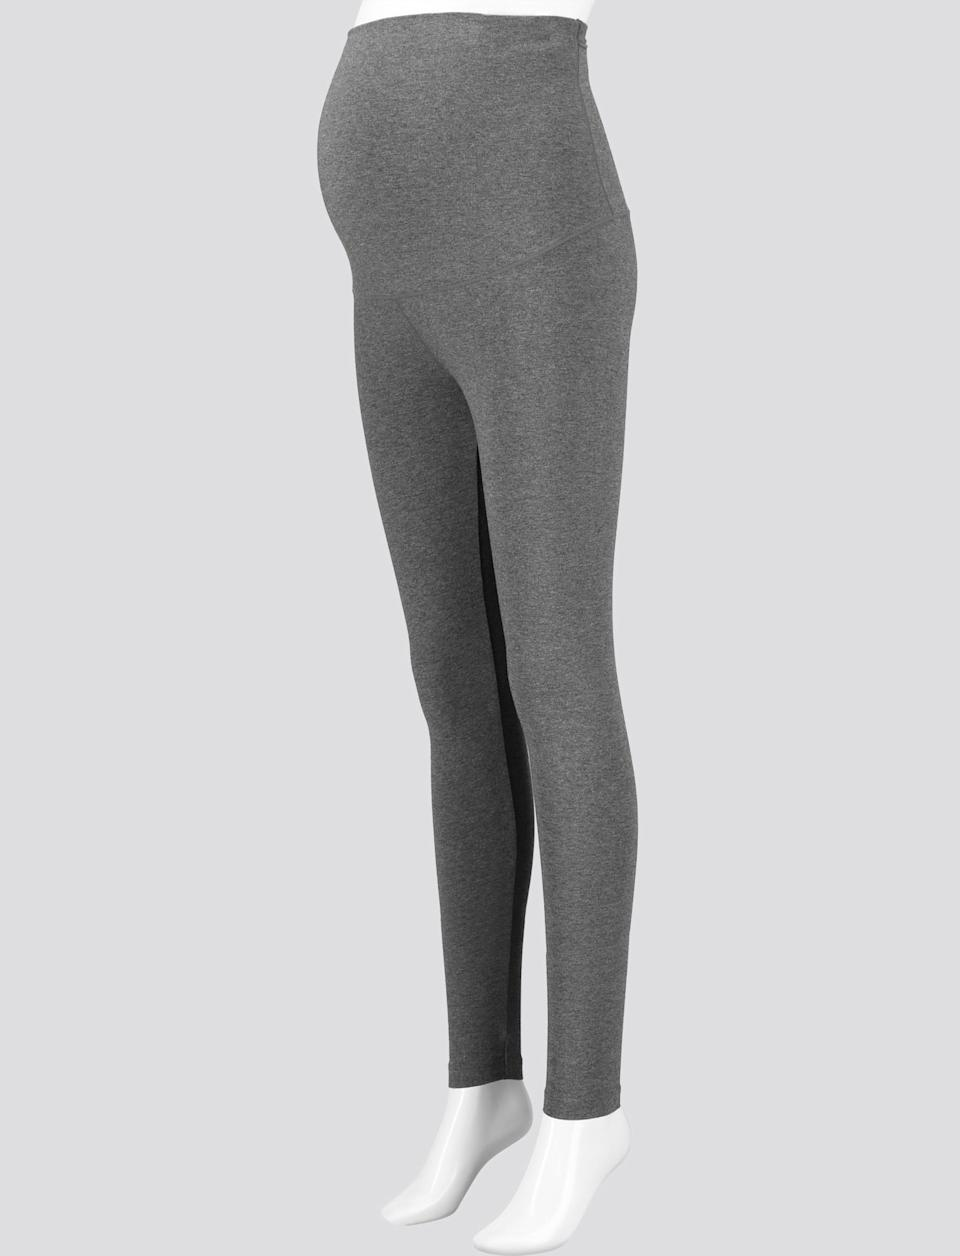 "<h3><a href=""https://www.uniqlo.com/us/en/women-maternity-leggings-online-exclusive-428781.html"" rel=""nofollow noopener"" target=""_blank"" data-ylk=""slk:Uniqlo Maternity Leggings"" class=""link rapid-noclick-resp"">Uniqlo Maternity Leggings</a></h3><br>This one goes out to the mamas — minimal seams and a non-elastic extra-wide waistband for extra comfort throughout your pregnancy. Plus, they're just under $15 so you might want to buy them in both colors!<br><br><strong>Uniqlo</strong> Maternity Leggings, $, available at <a href=""https://go.skimresources.com/?id=30283X879131&url=https%3A%2F%2Fwww.uniqlo.com%2Fus%2Fen%2Fwomen-maternity-leggings-online-exclusive-428781.html"" rel=""nofollow noopener"" target=""_blank"" data-ylk=""slk:Uniqlo"" class=""link rapid-noclick-resp"">Uniqlo</a>"